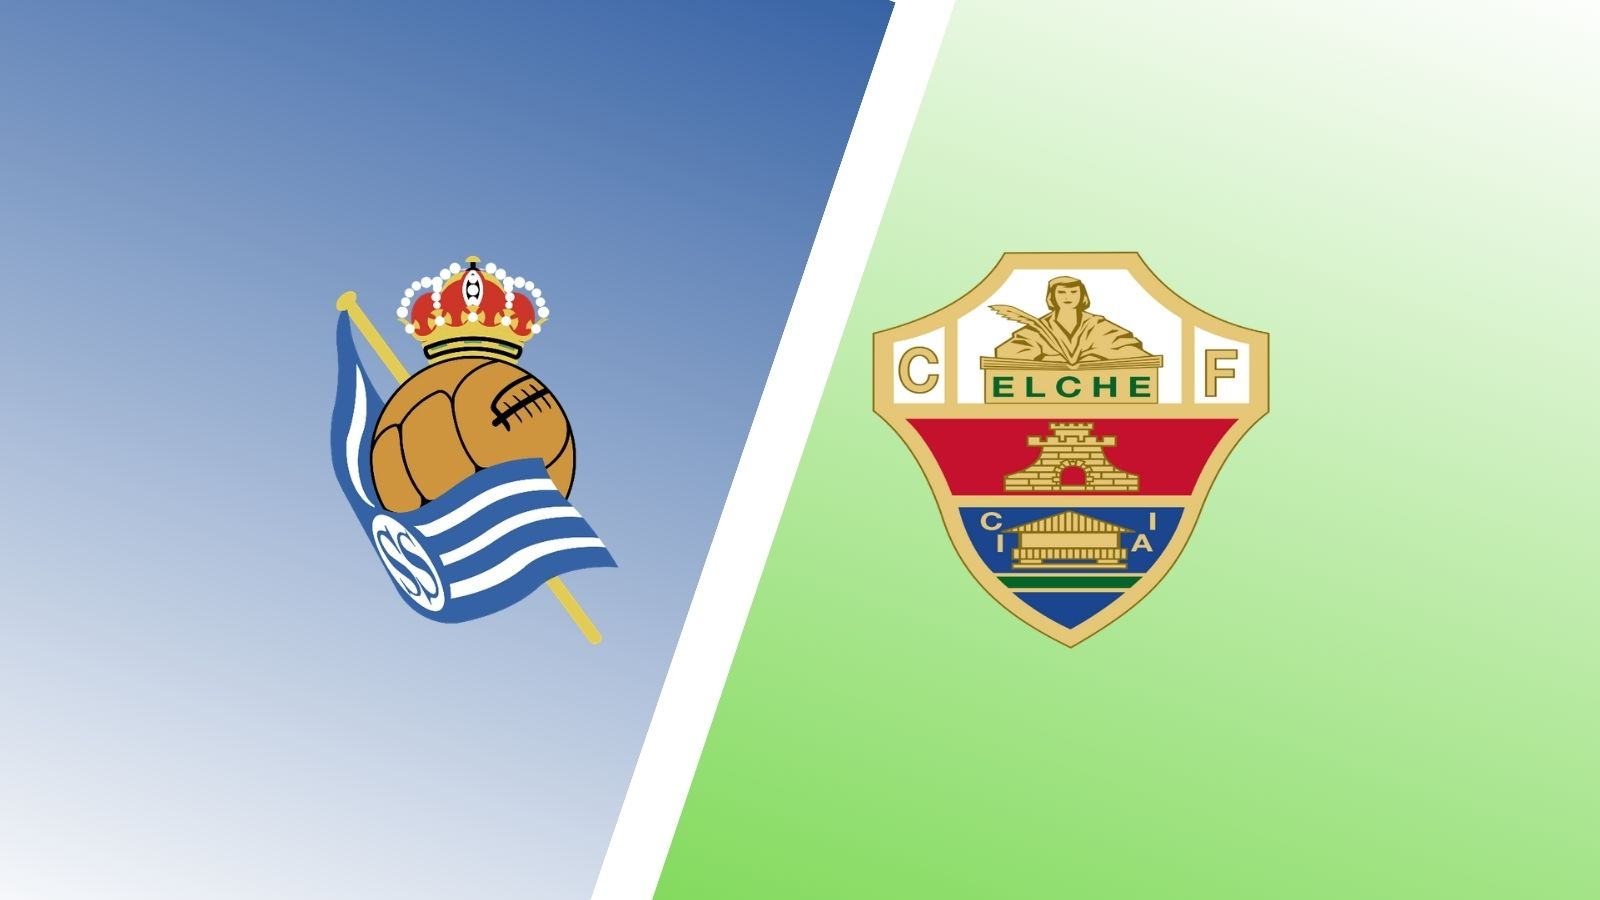 Real Sociedad - Bleacher Report - Latest News, Scores, Stats and Standings